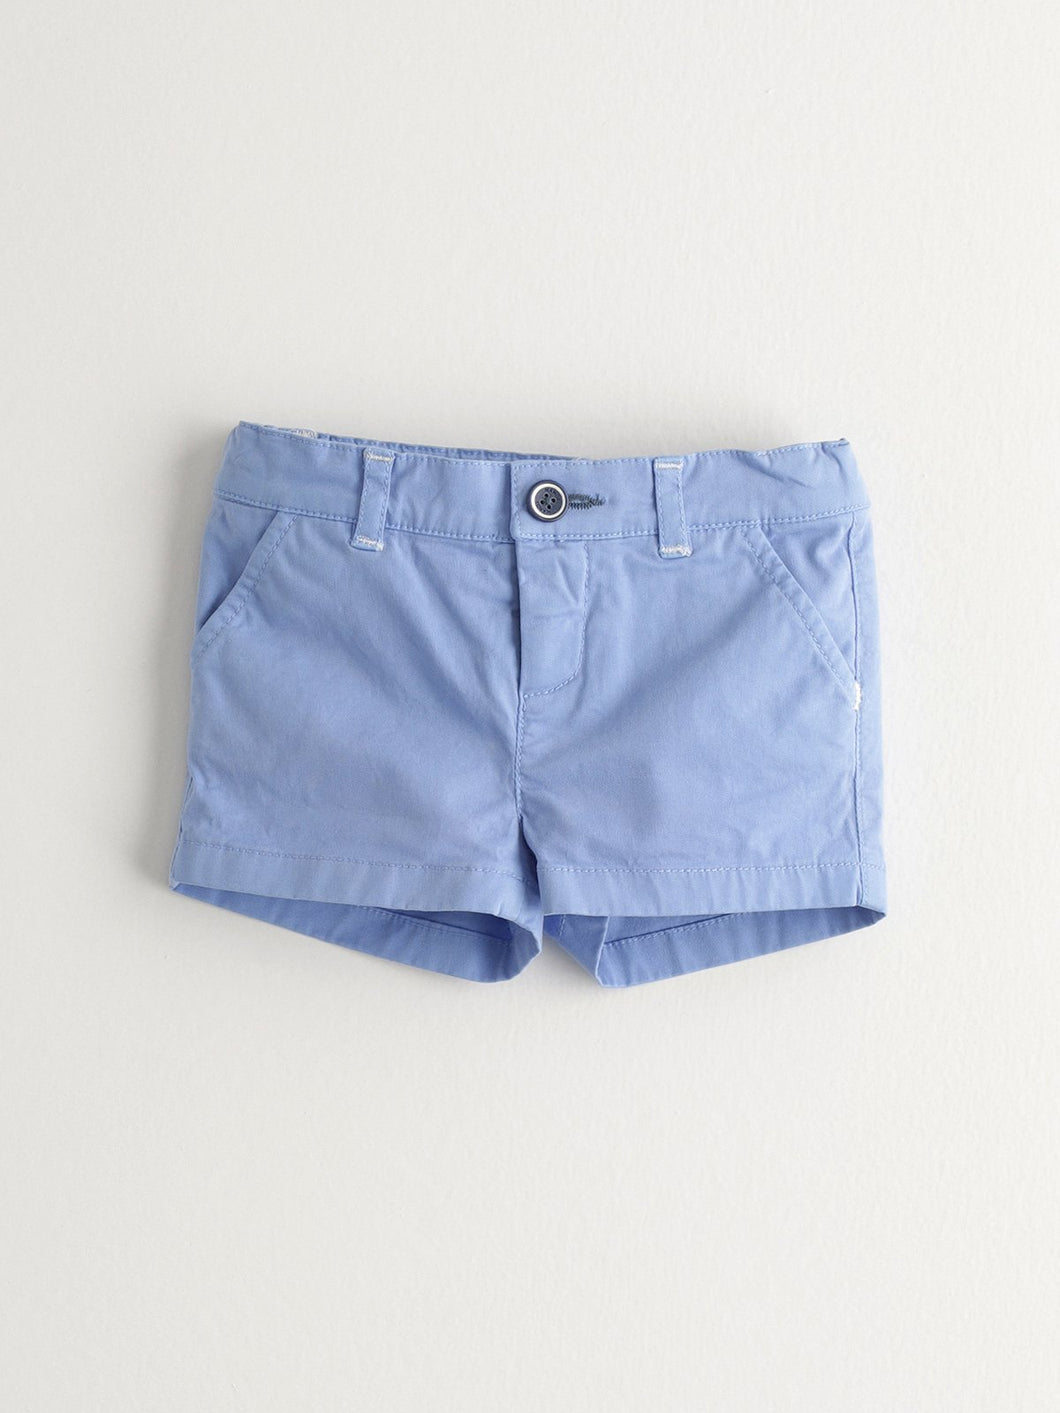 SKY BLUE SHORTS FOR BOYS